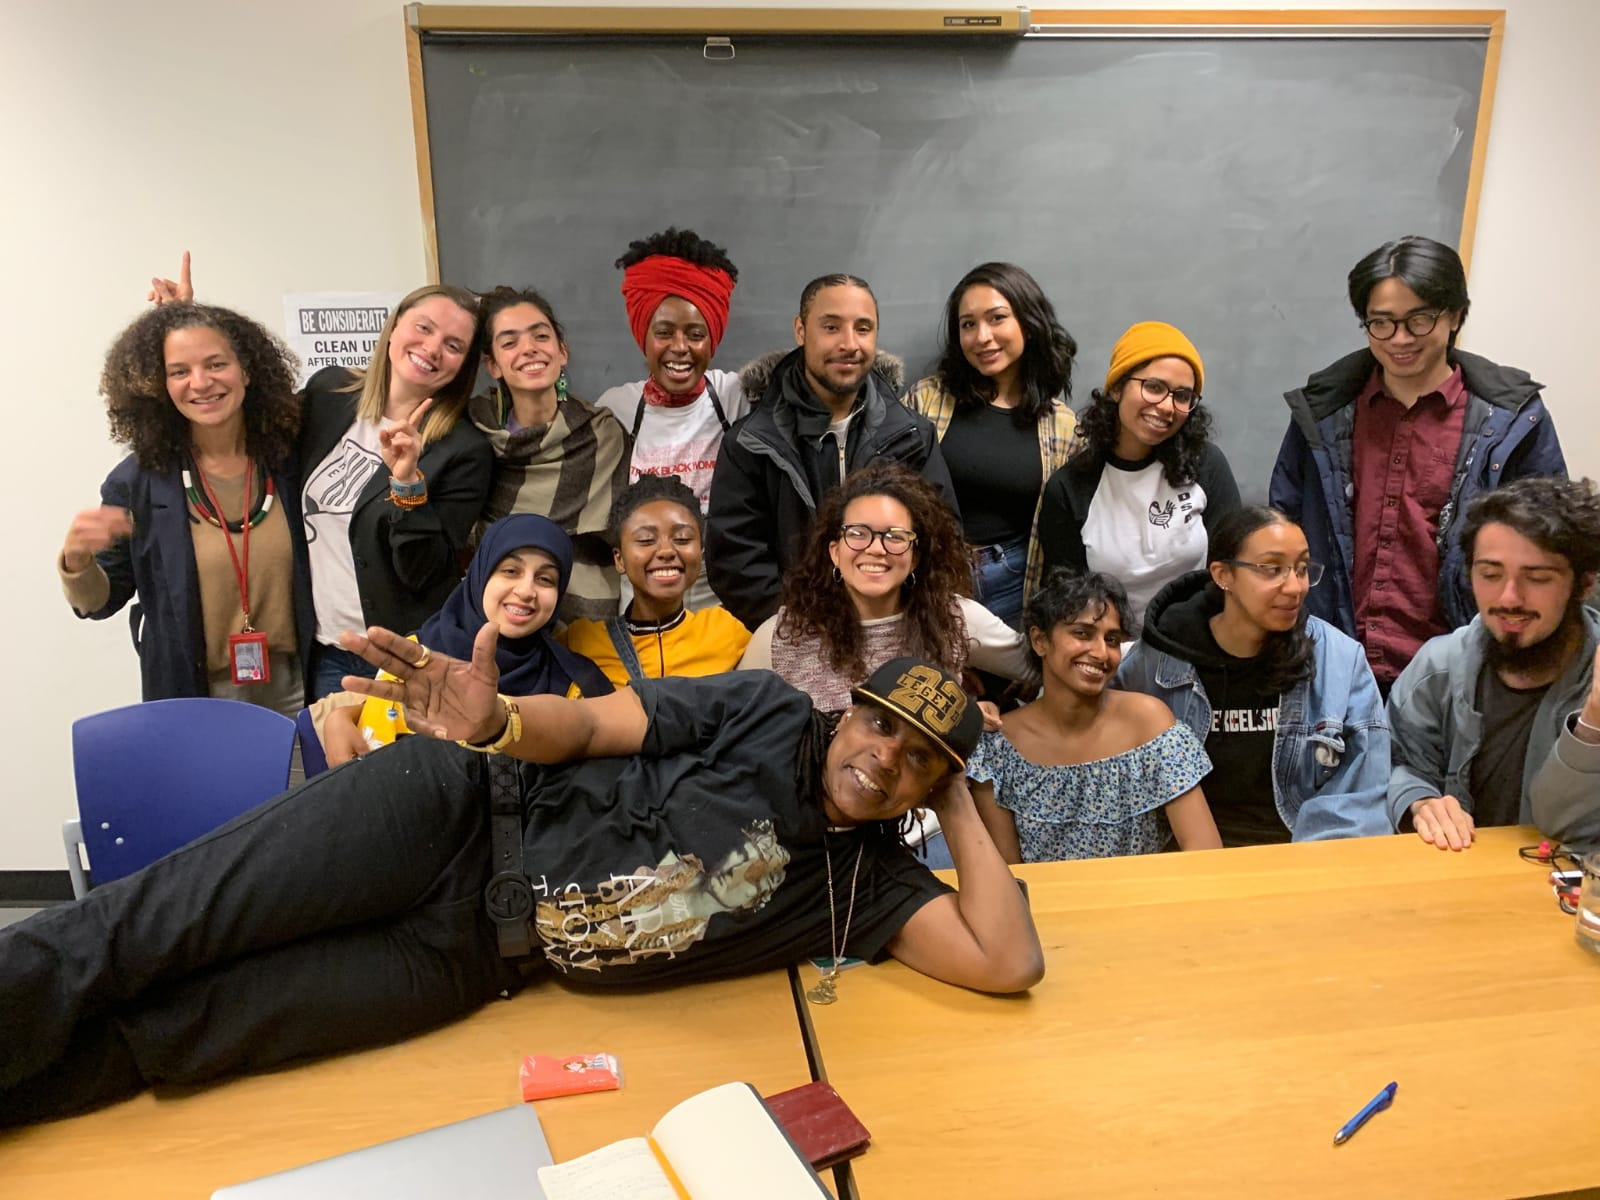 THE KITE @ City College - Munchie, Joel and Gigi spoke at City College about writing, incarceration and healing through the arts.